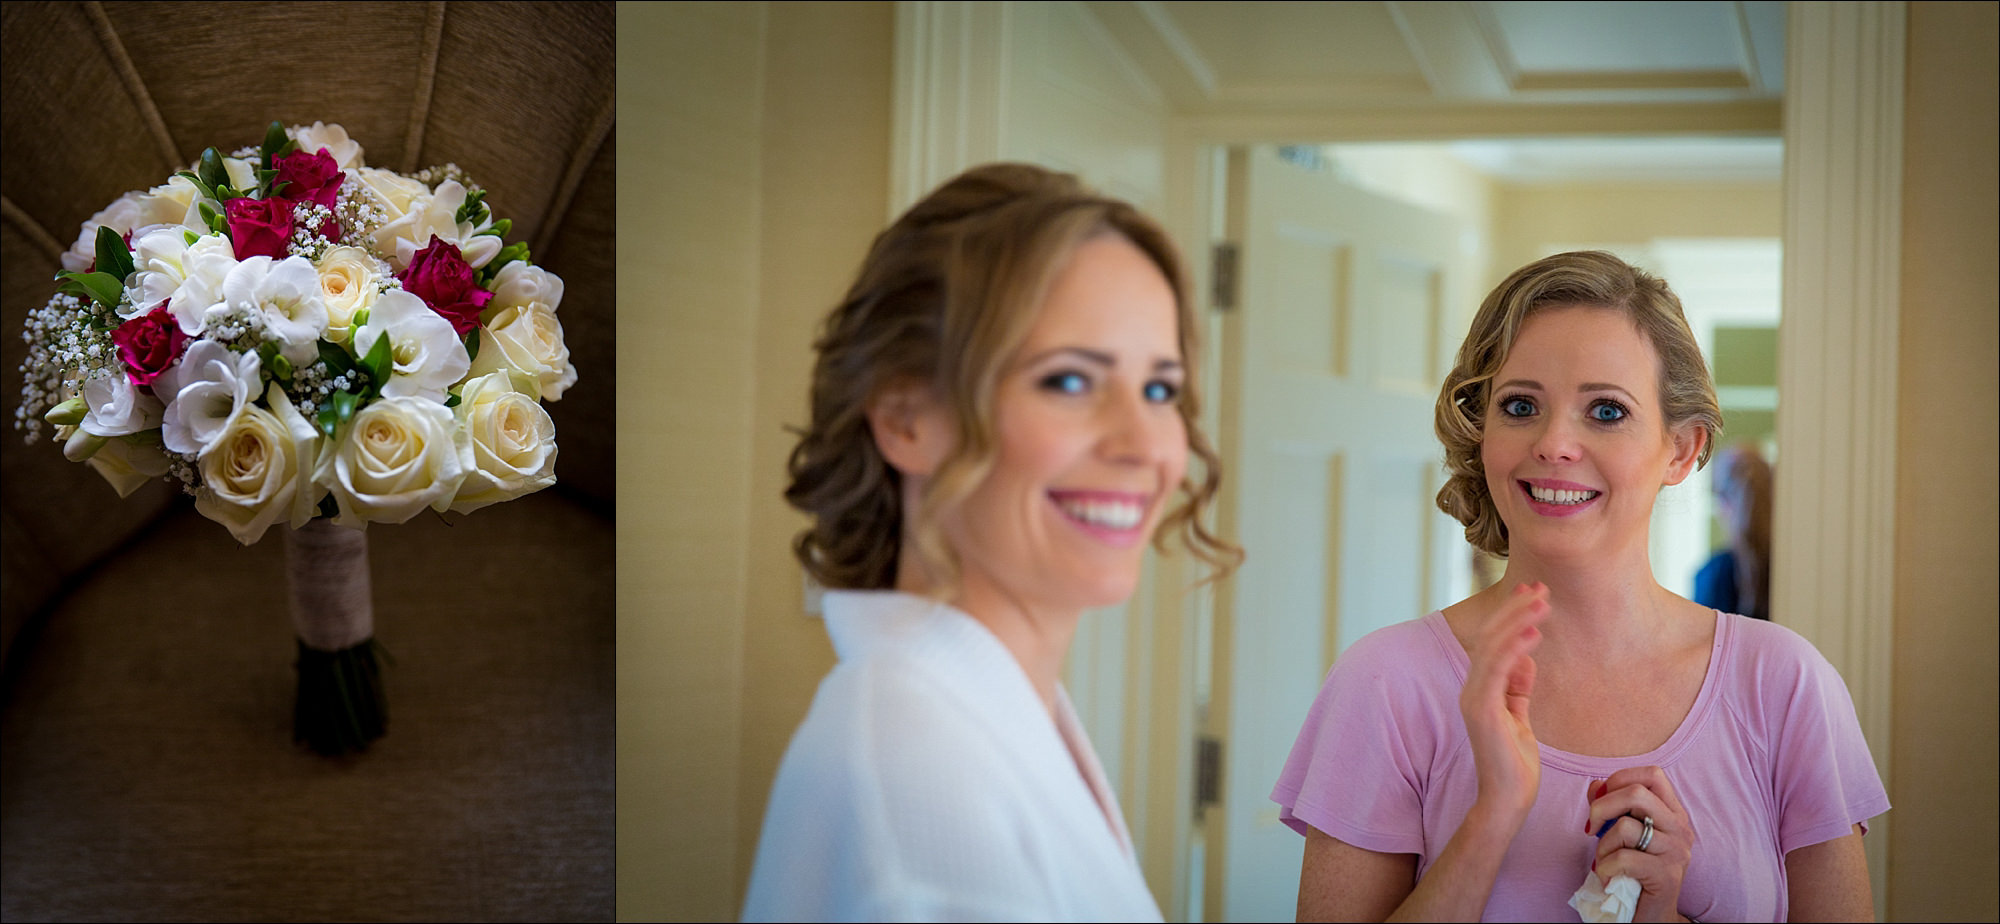 dublin wedding photographer david duignan photography tankardstown weddings slane rathfeigh church ireland 0009